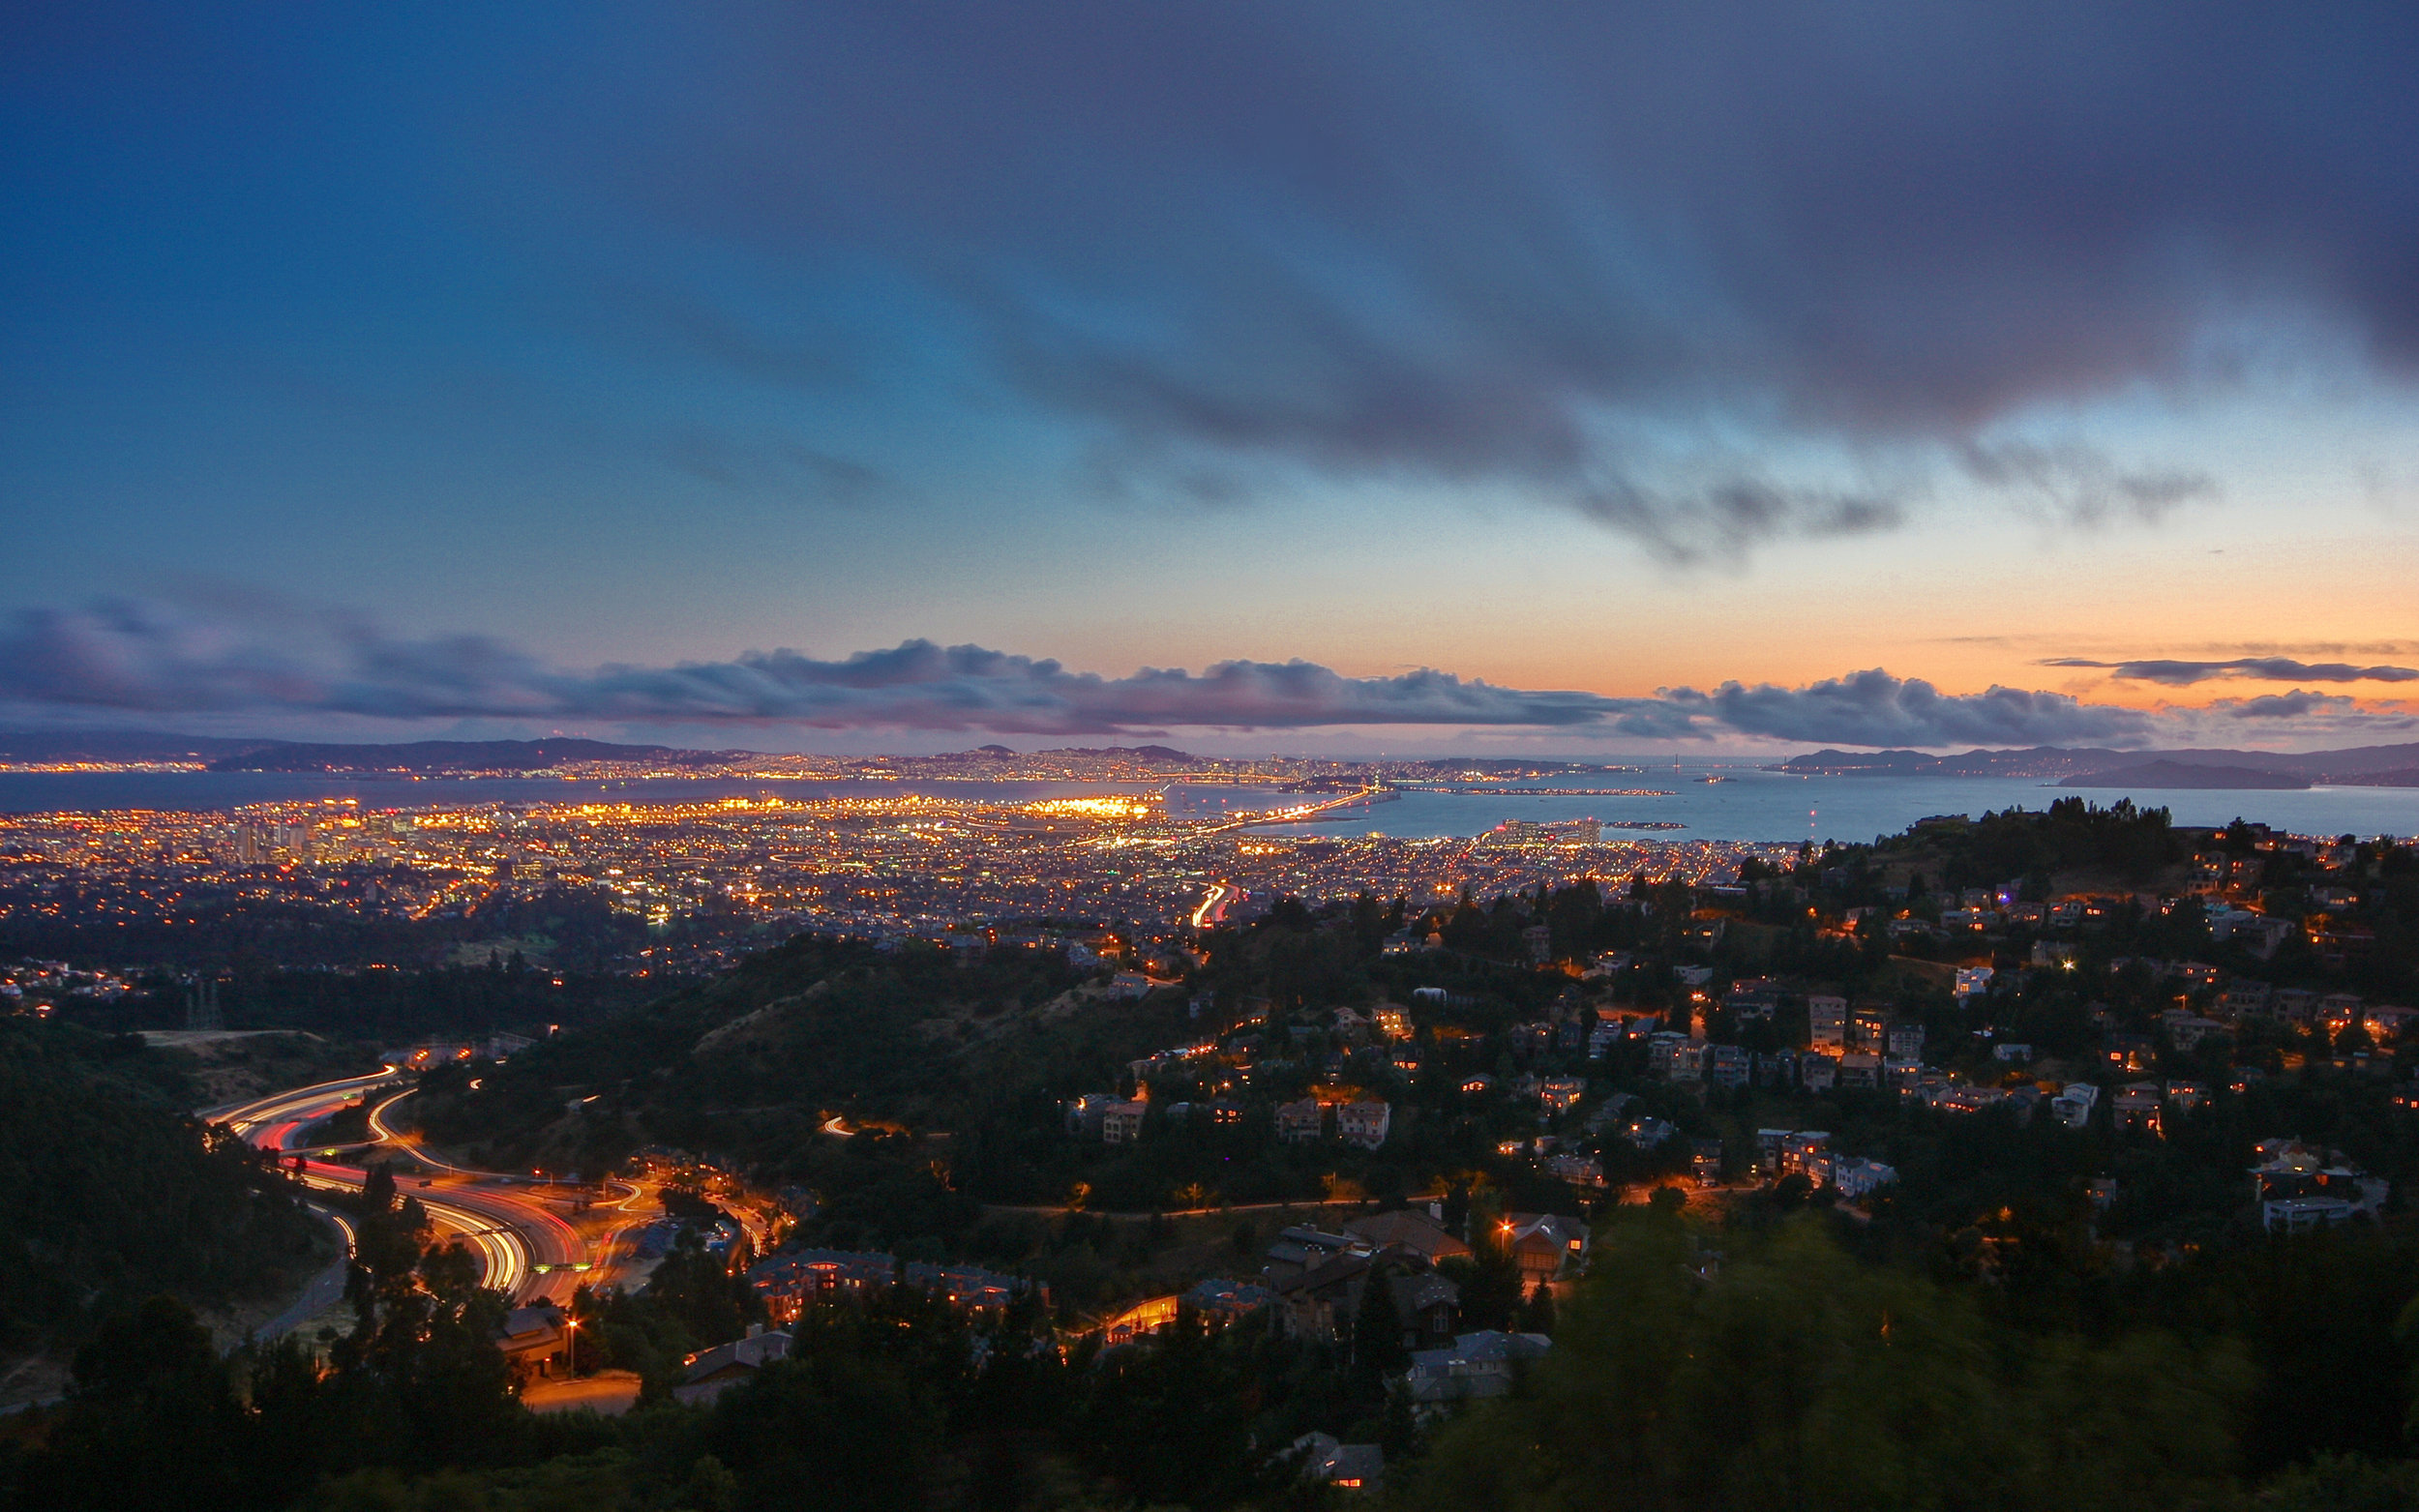 Dusk_in_the_Oakland_Hills_-_Flickr_-_Joe_Parks.jpg